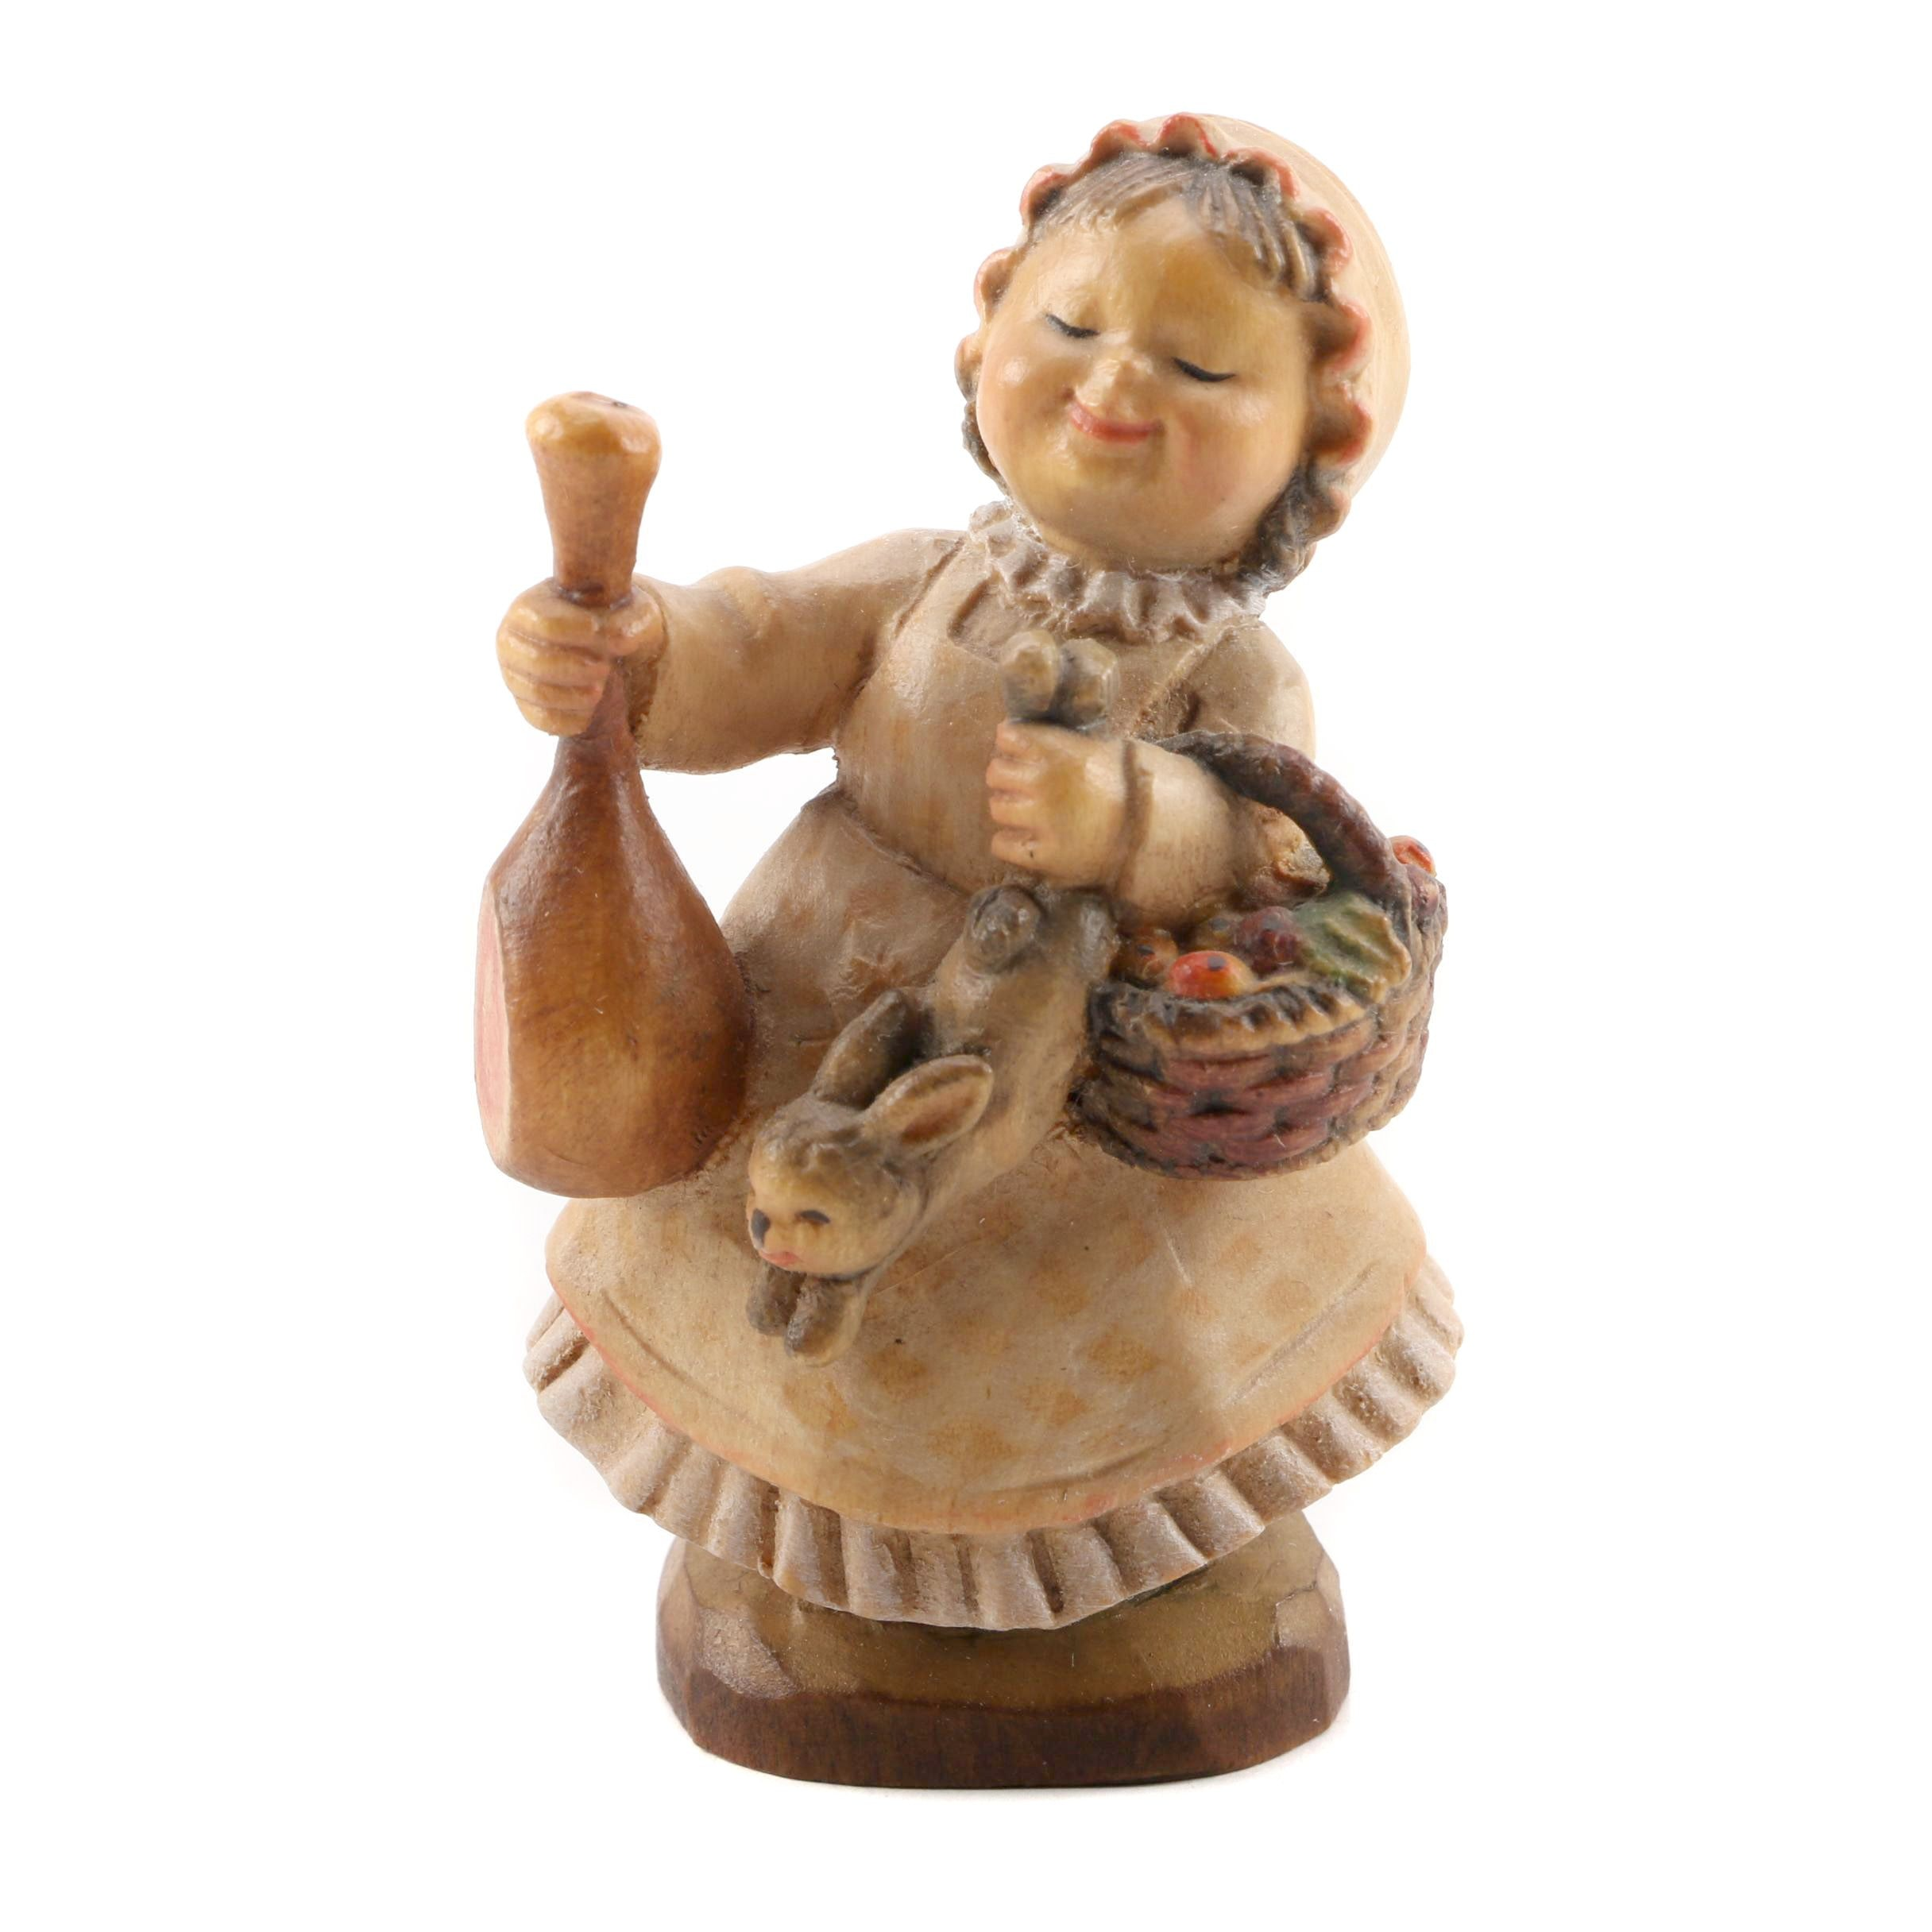 ANRI Italian Hand Carved Wooden Figurine by Jerrandie